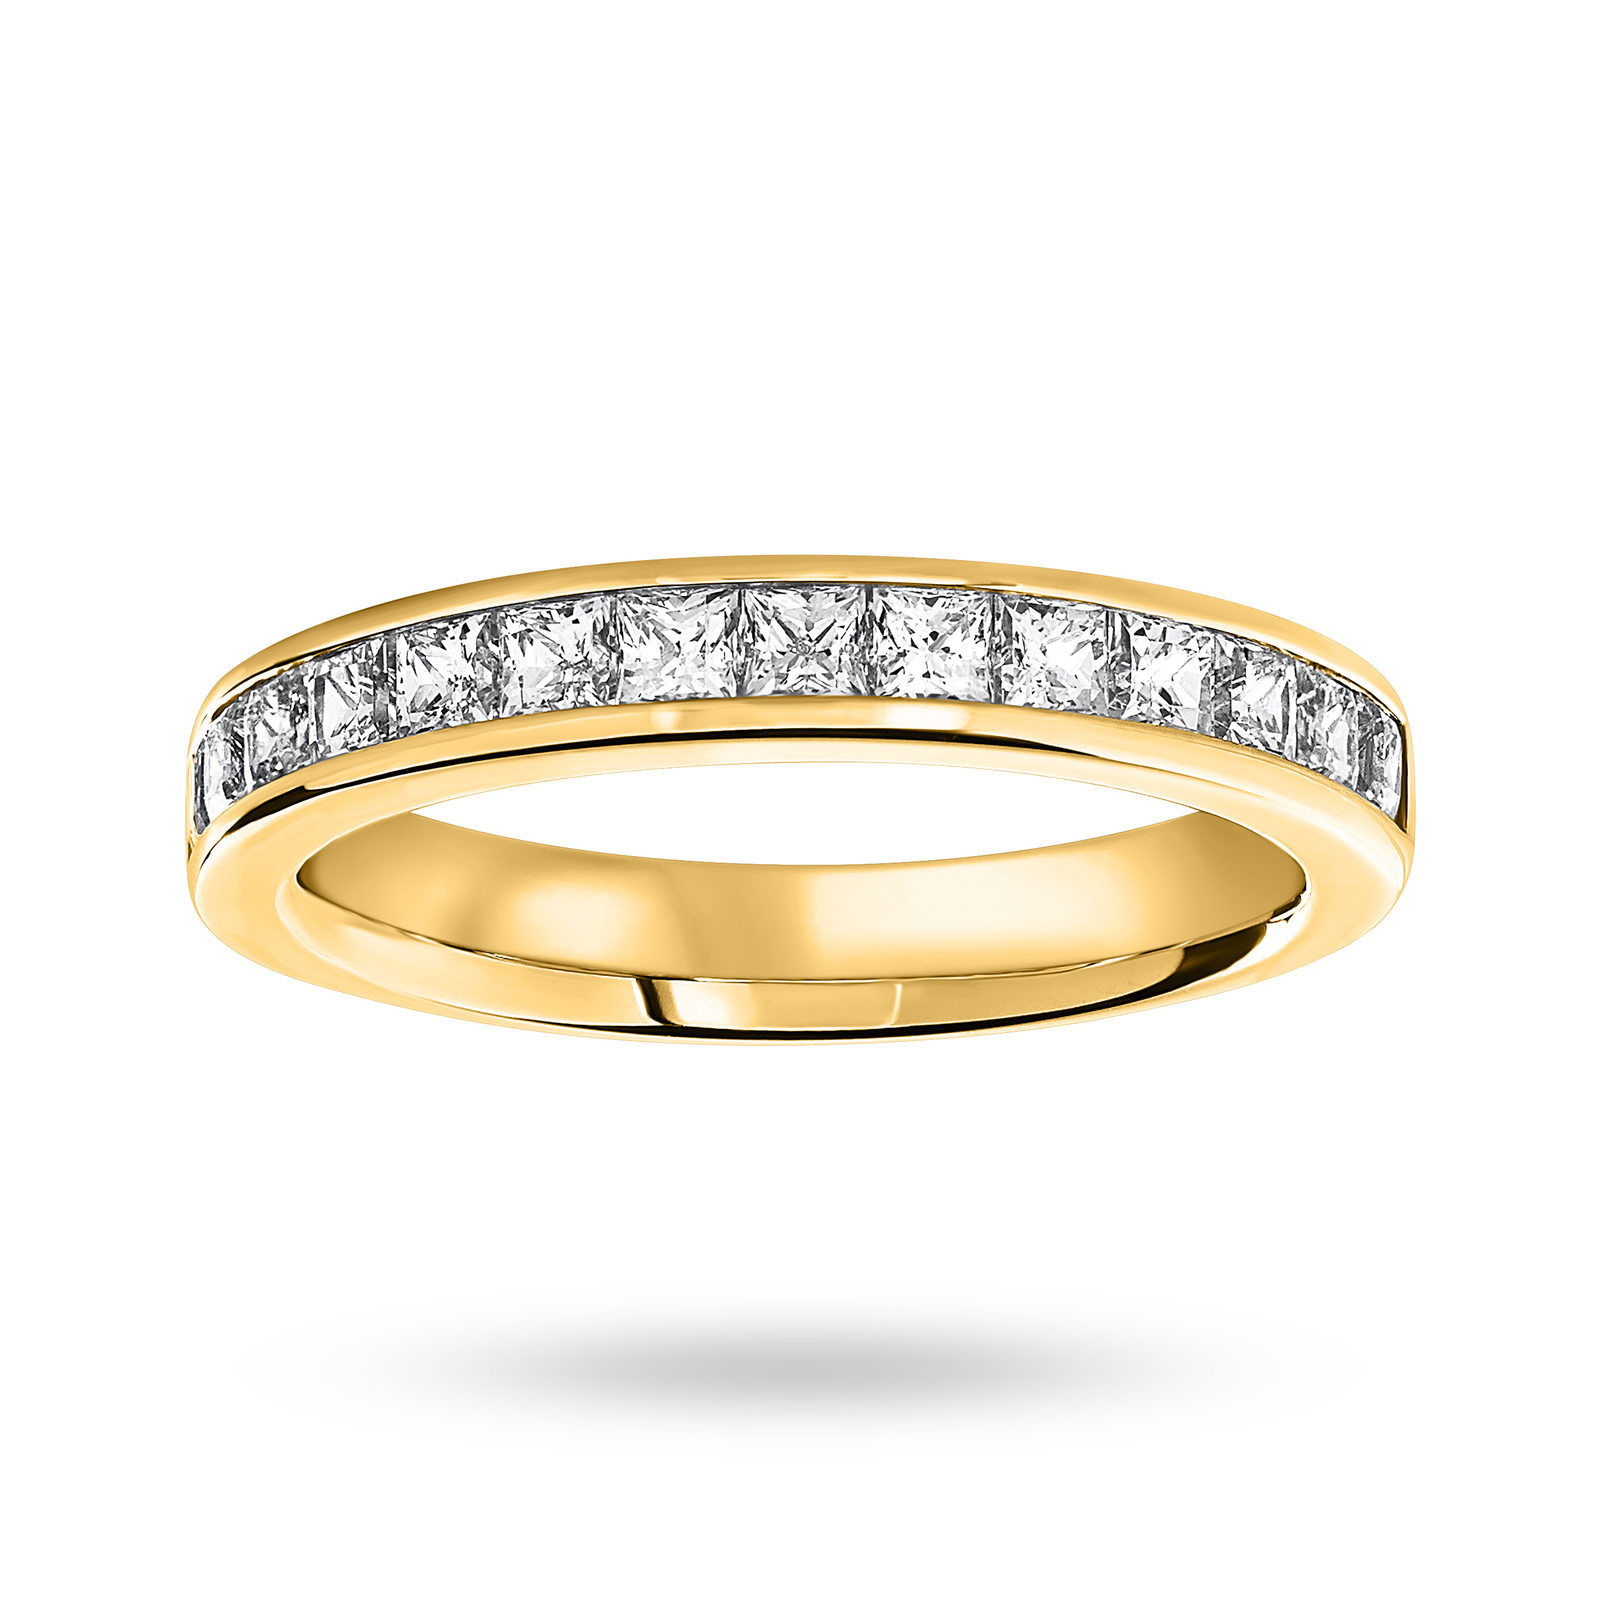 18 Carat Yellow Gold 1.00 Carat Princess Cut Half Eternity Ring